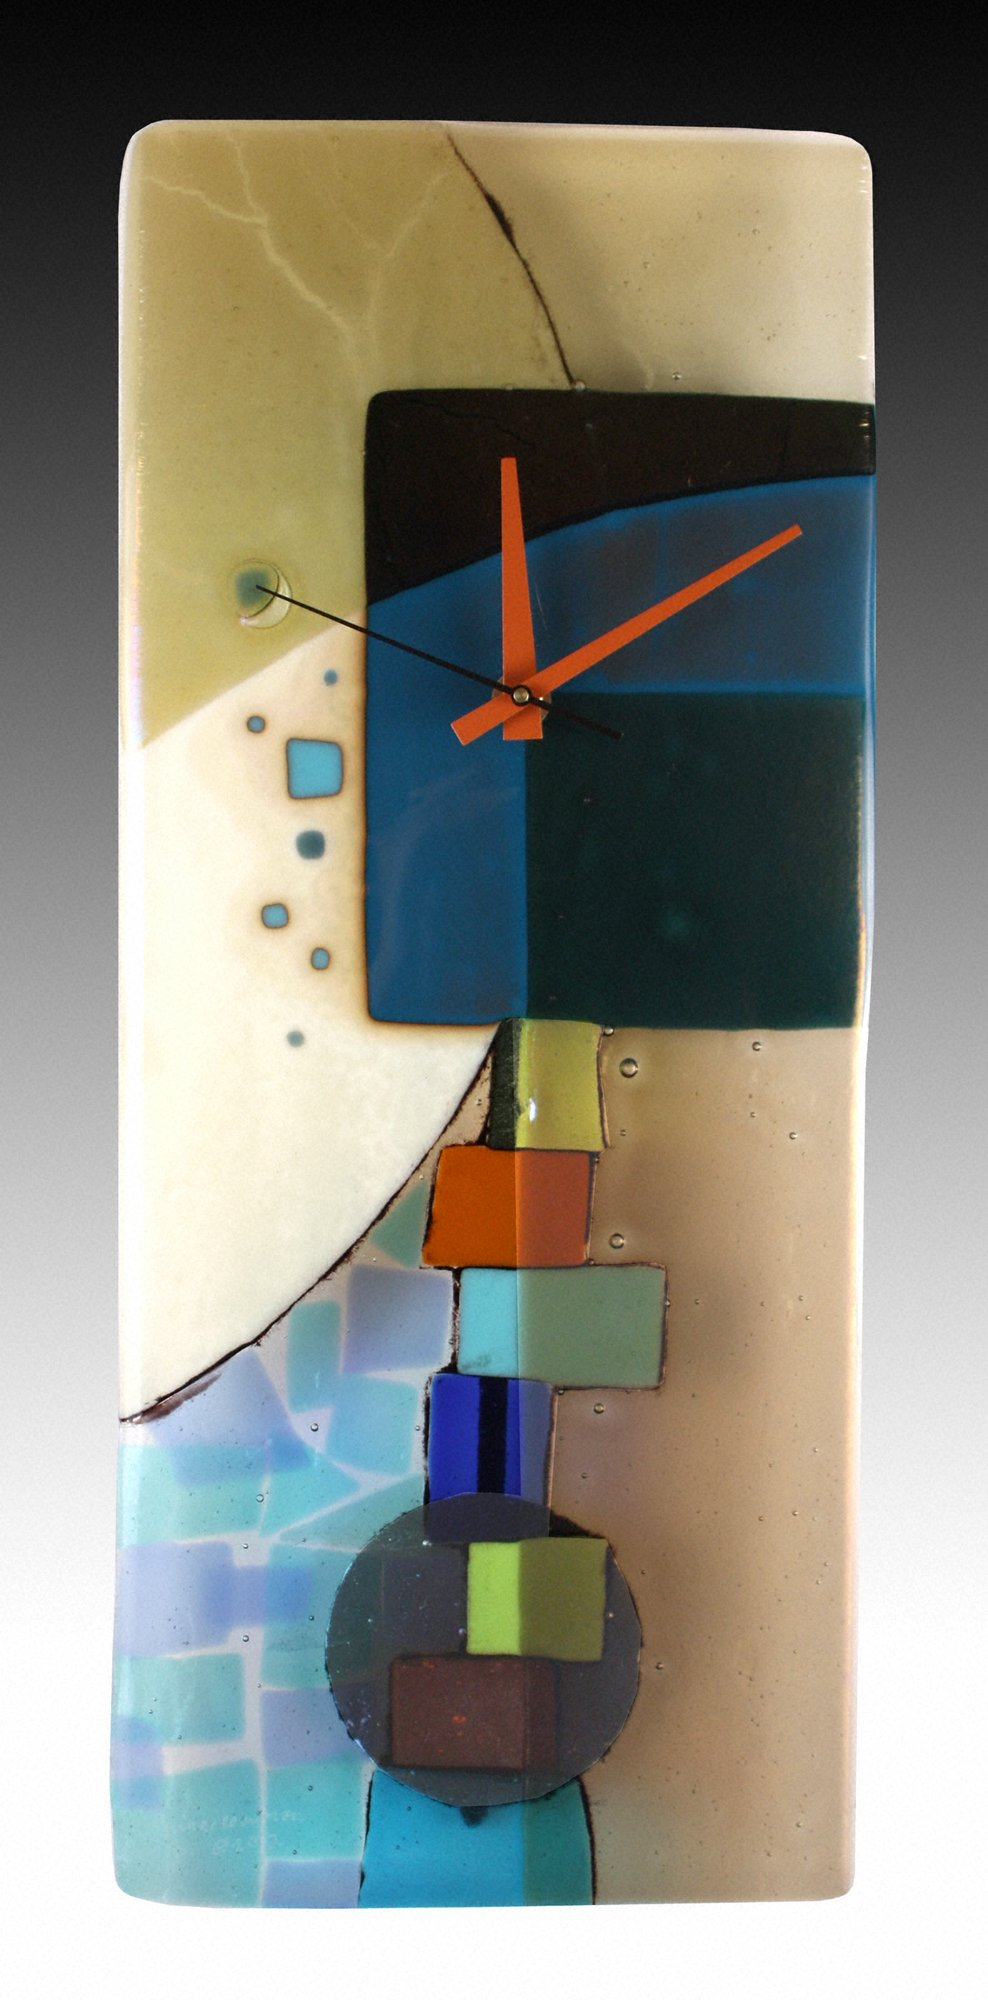 Andrea Fused Glass Pendulum Clock - Art Glass Clock - by Nina Cambron